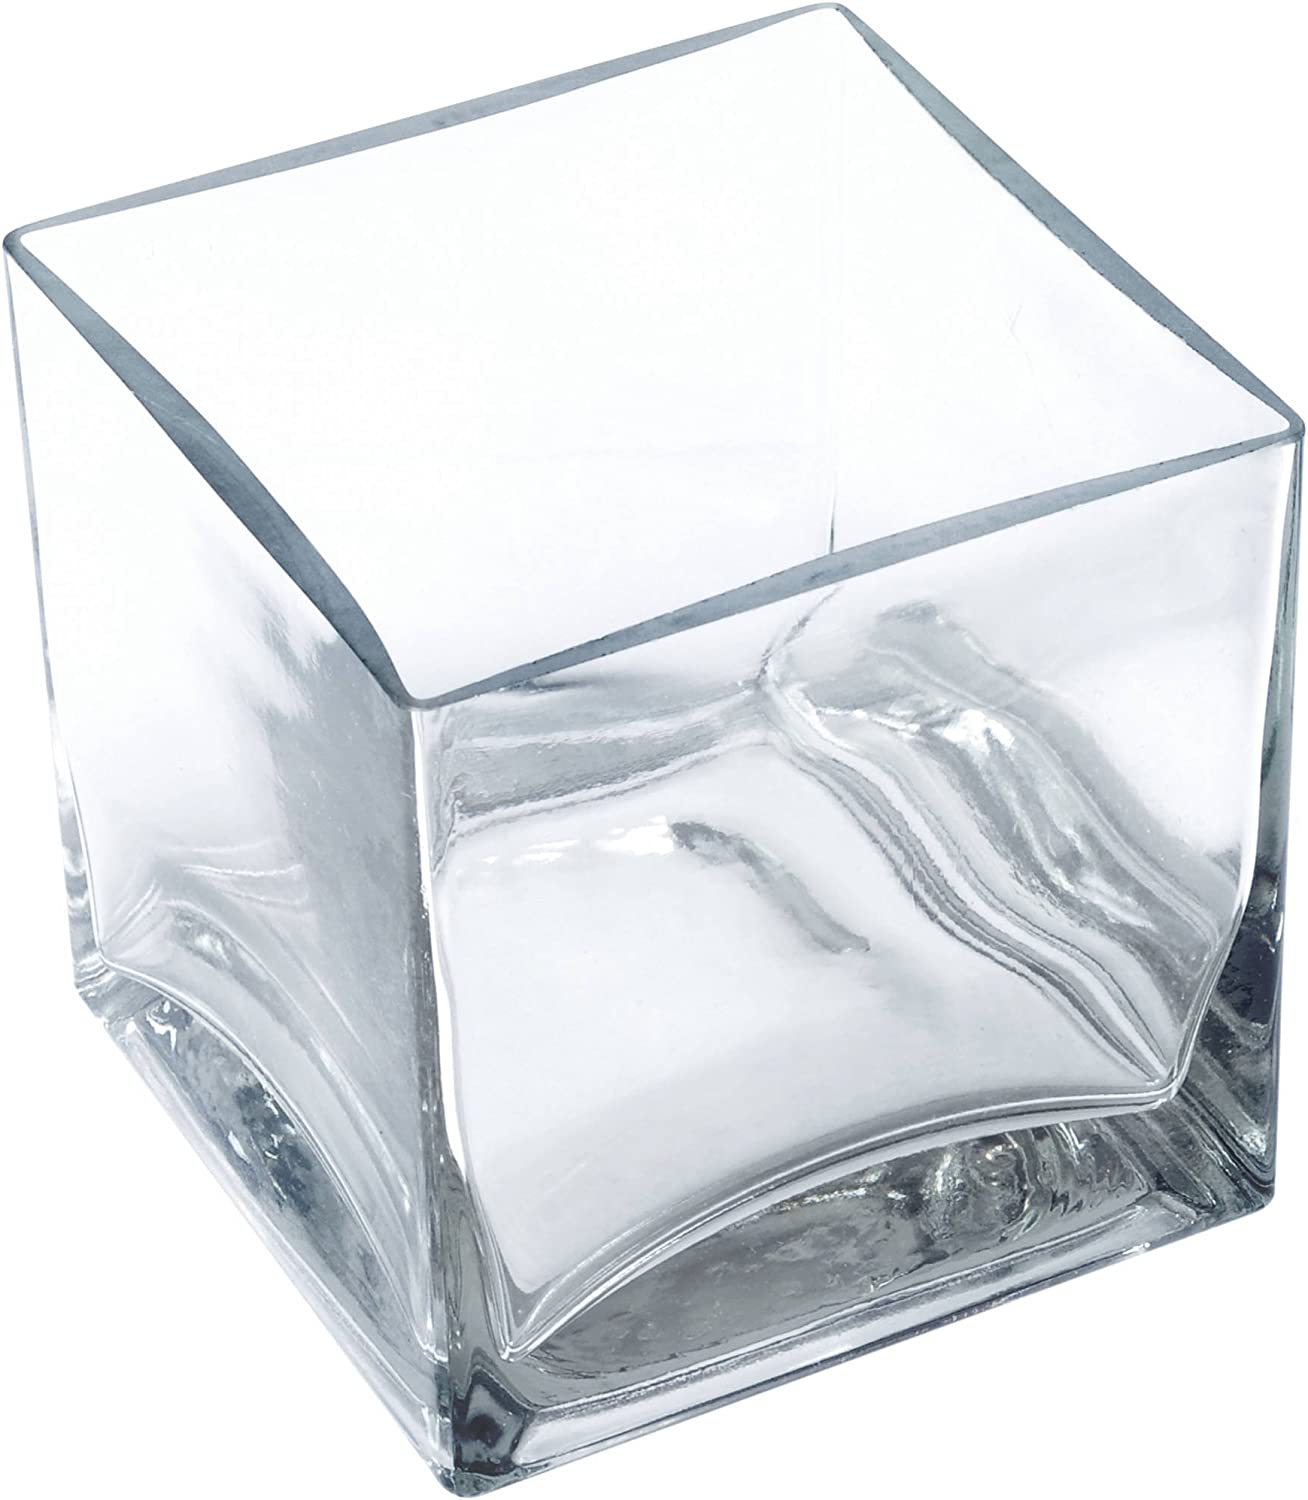 Clear Square Cubic Glass Time sale Vase 6 4x4x4 Centerpi Ranking TOP7 Cube Inches Pack-